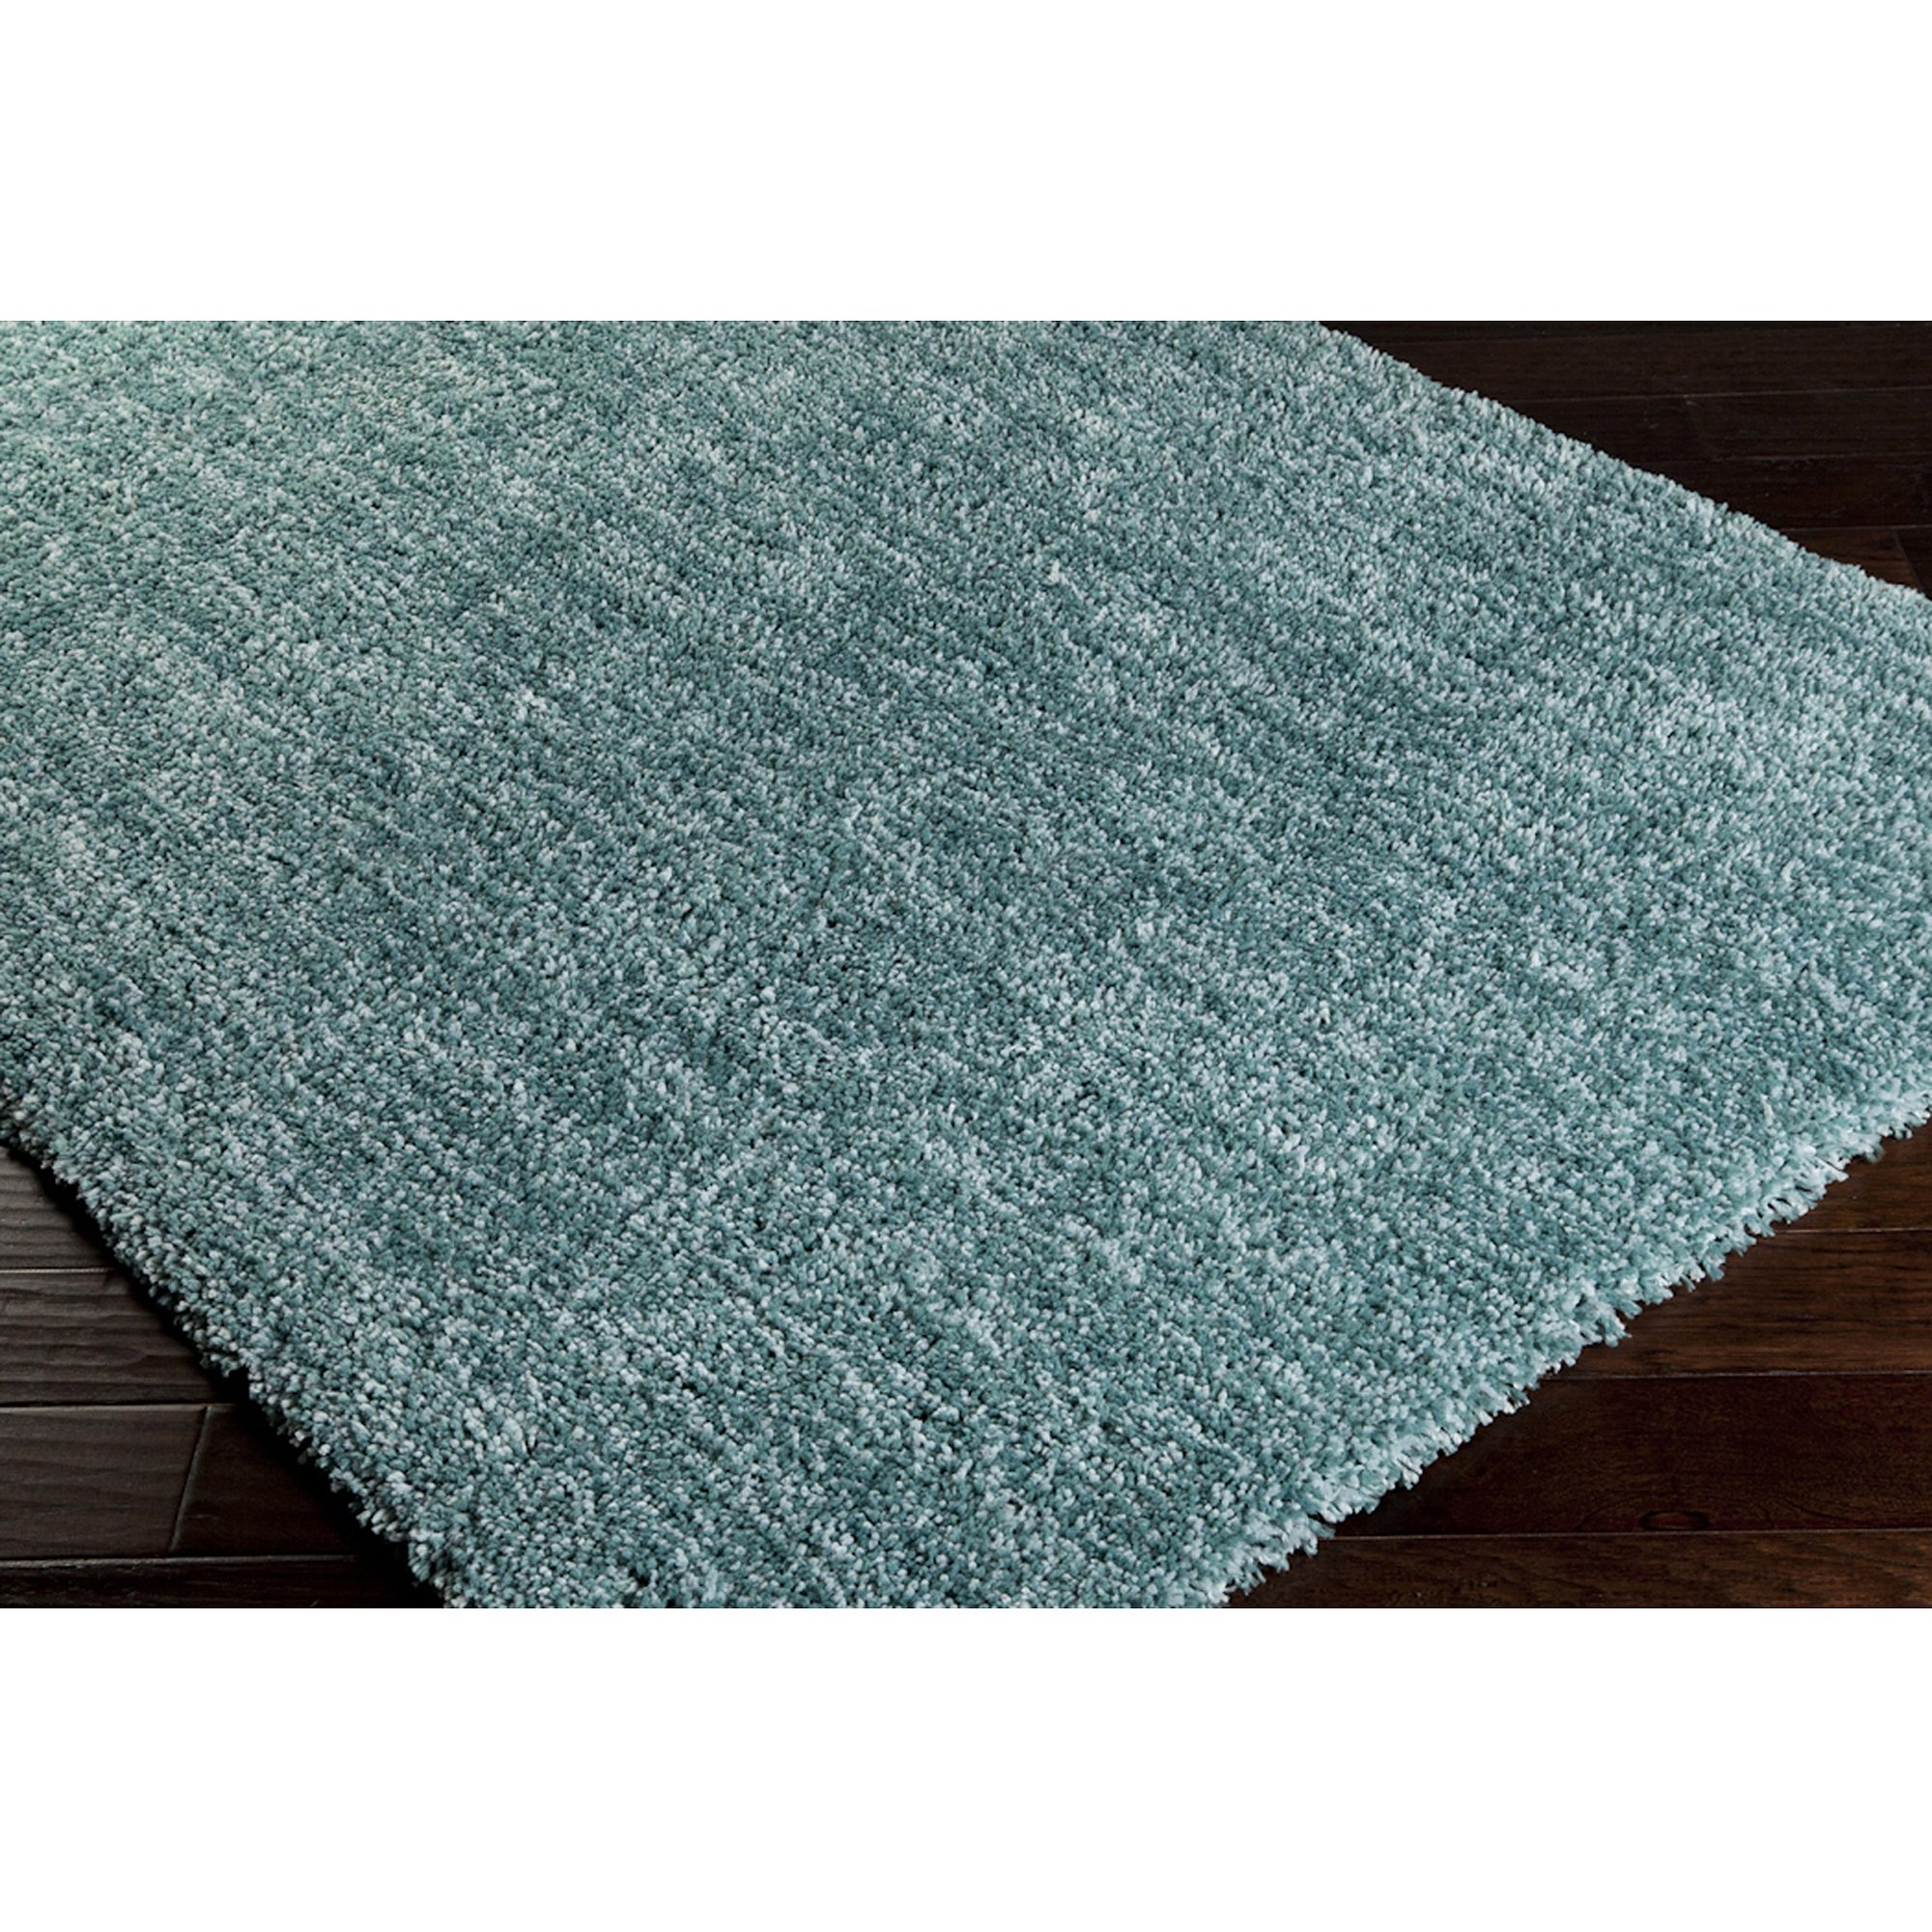 Art Of Knot Super Soft Hand Woven Shag Area Rug, Teal